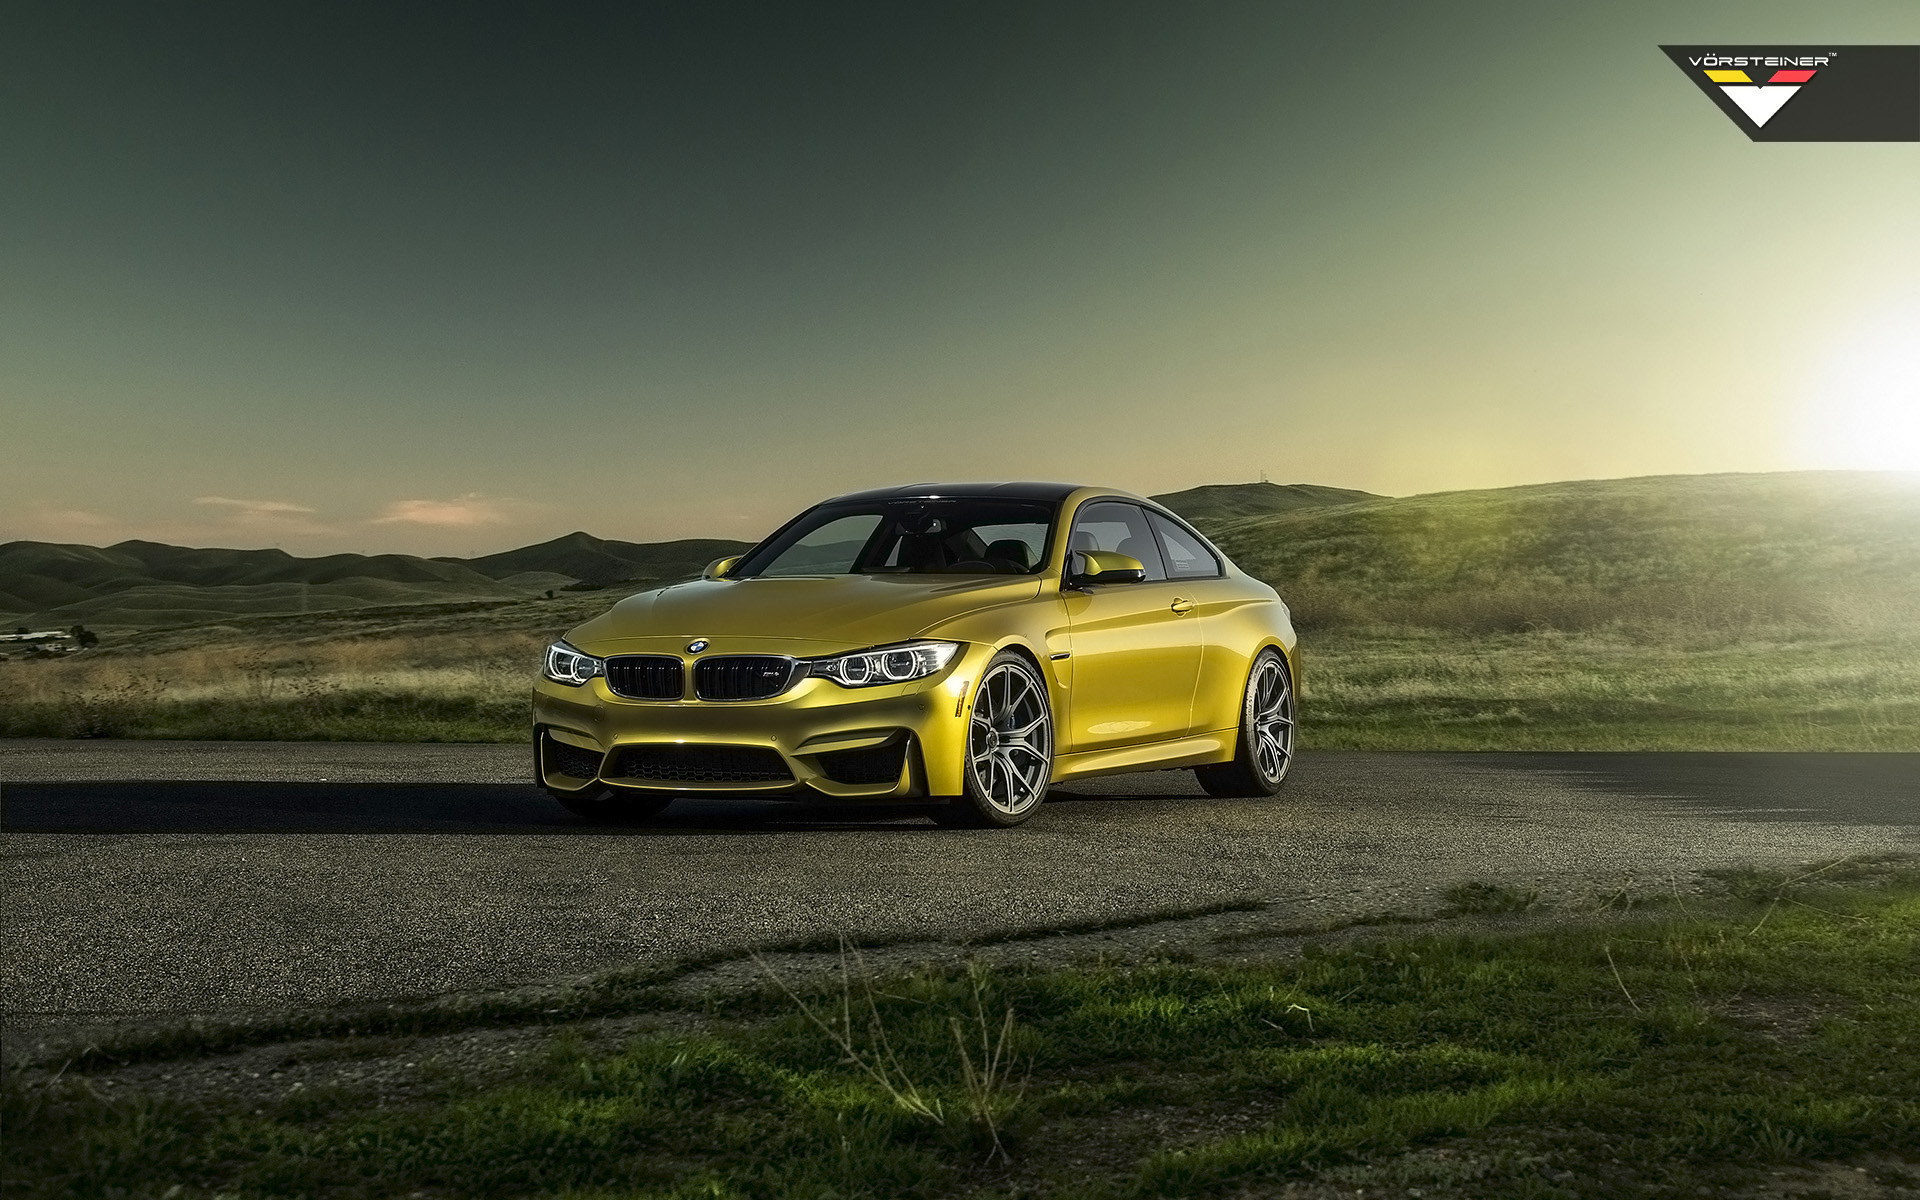 BMW M4 HD Wallpaper - WallpaperSafari